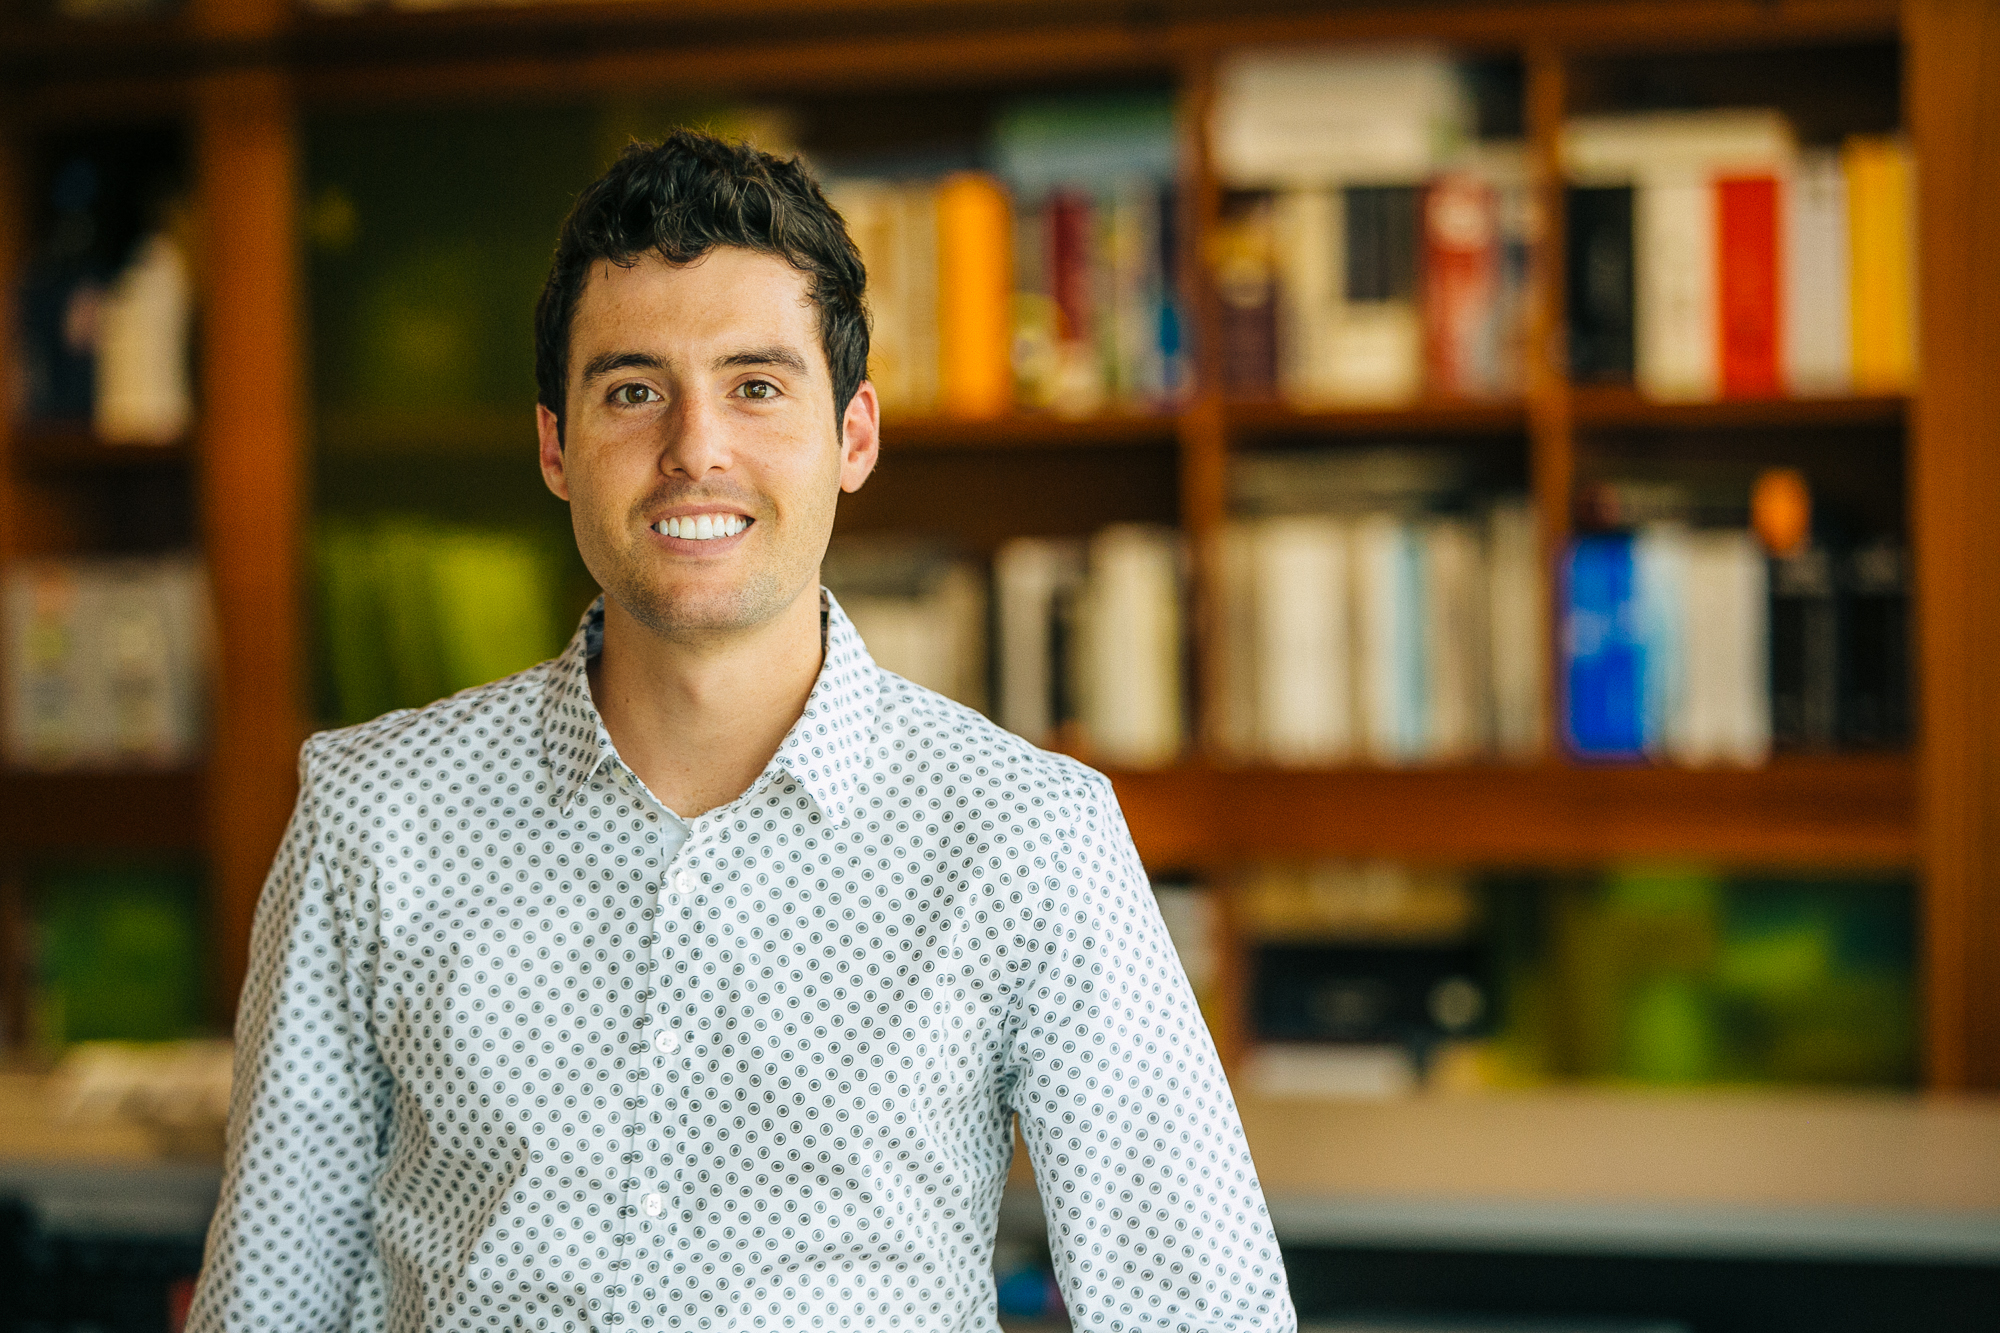 Daniel Aversa, AIA, NCARB | Licensed in MN